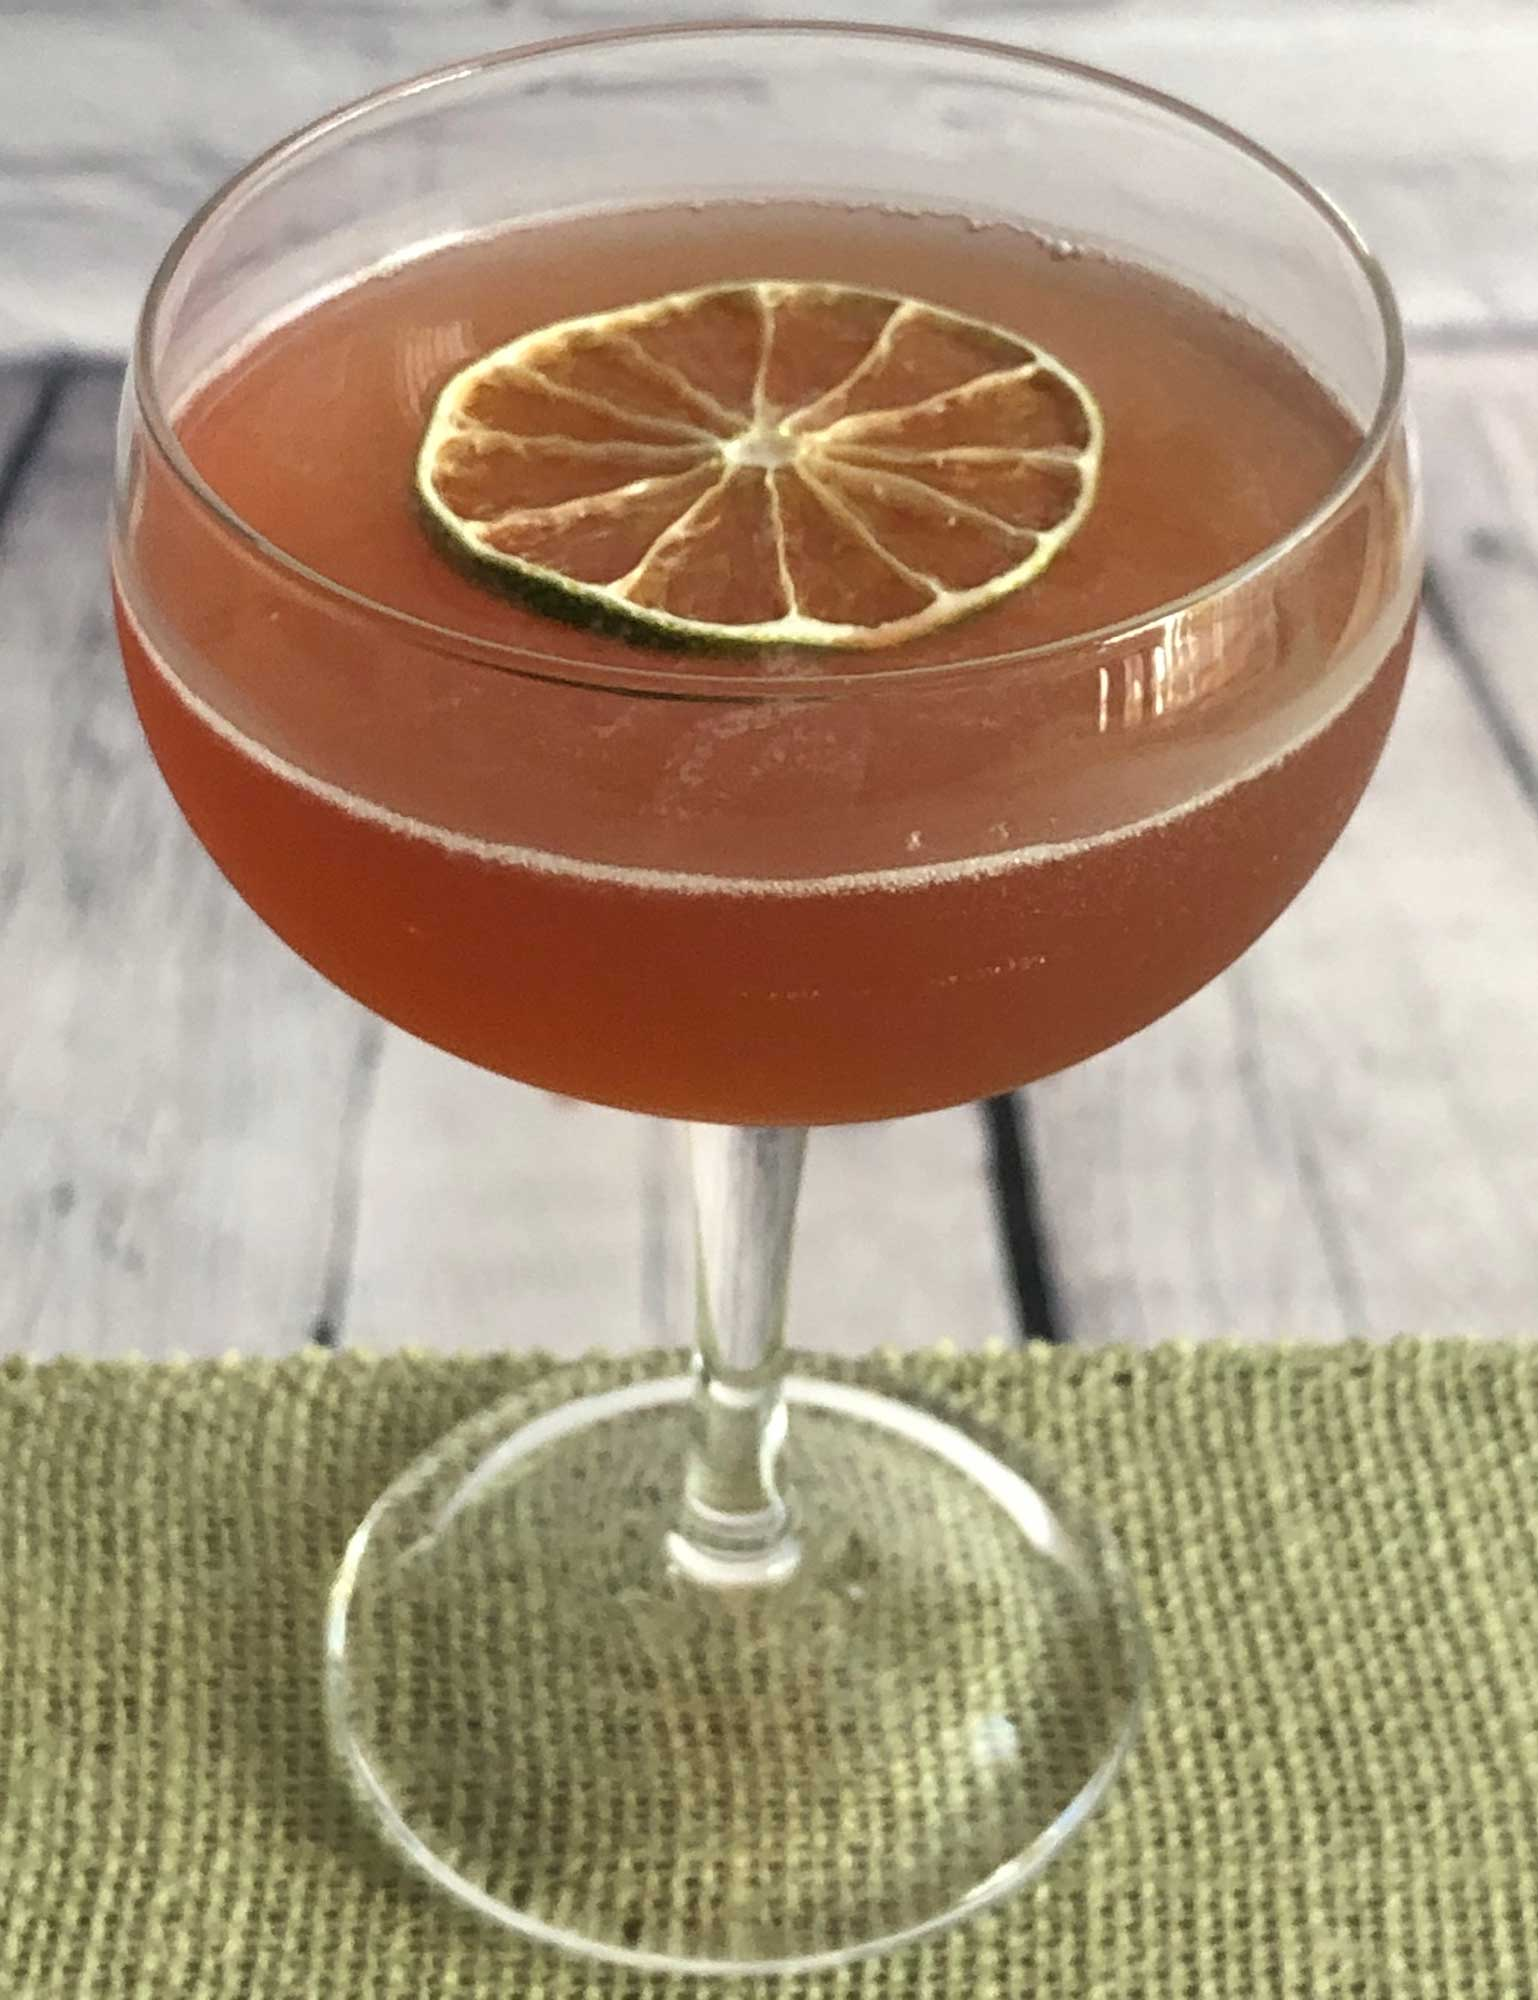 An example of the Charlie Chaplin, the mixed drink (cocktail), by Embury, The Fine Art of Mixing Drinks, featuring Blume Marillen Apricot Eau-de-Vie, Hayman's Sloe Gin, and lime juice; photo by Lee Edwards